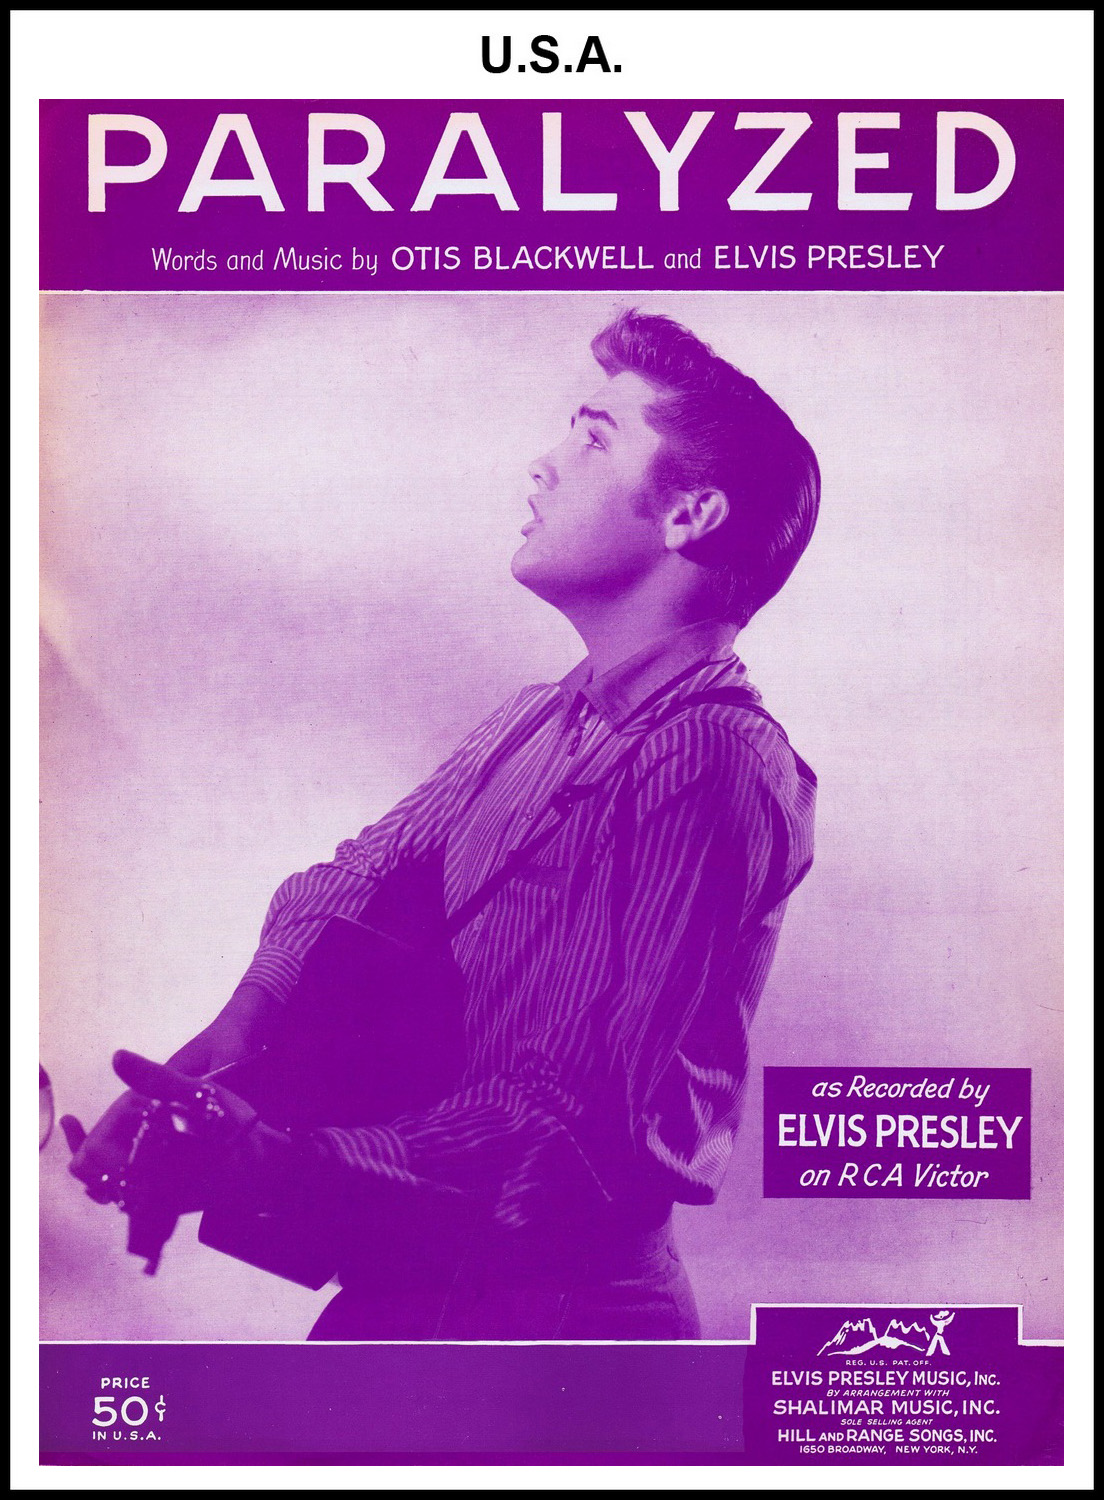 1956 - Paralyzed (USA 50c) (CHRIS GILES COLLECTION)